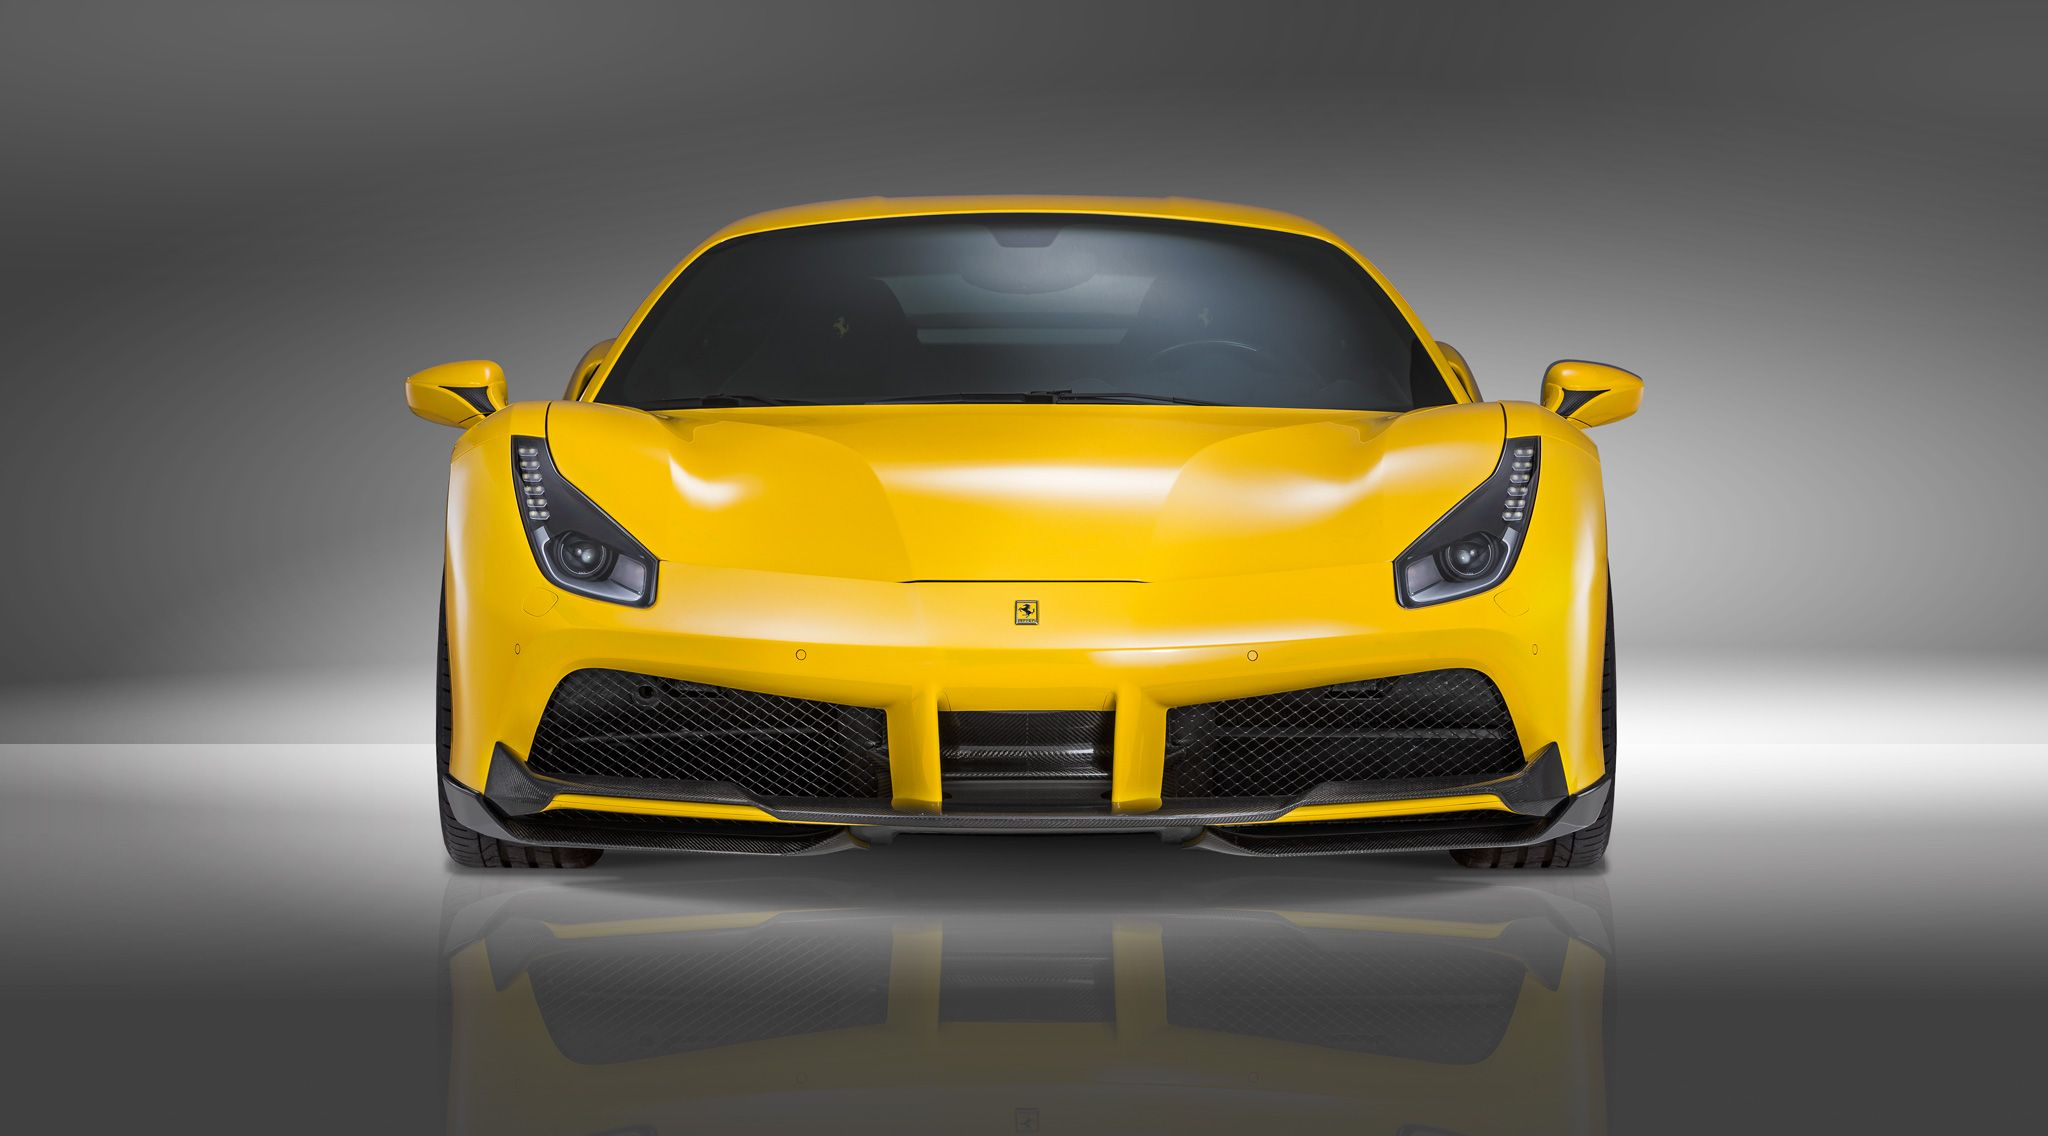 German tuning company novitec rosso pampered the ferrari 488 gtb with some goodies and the result